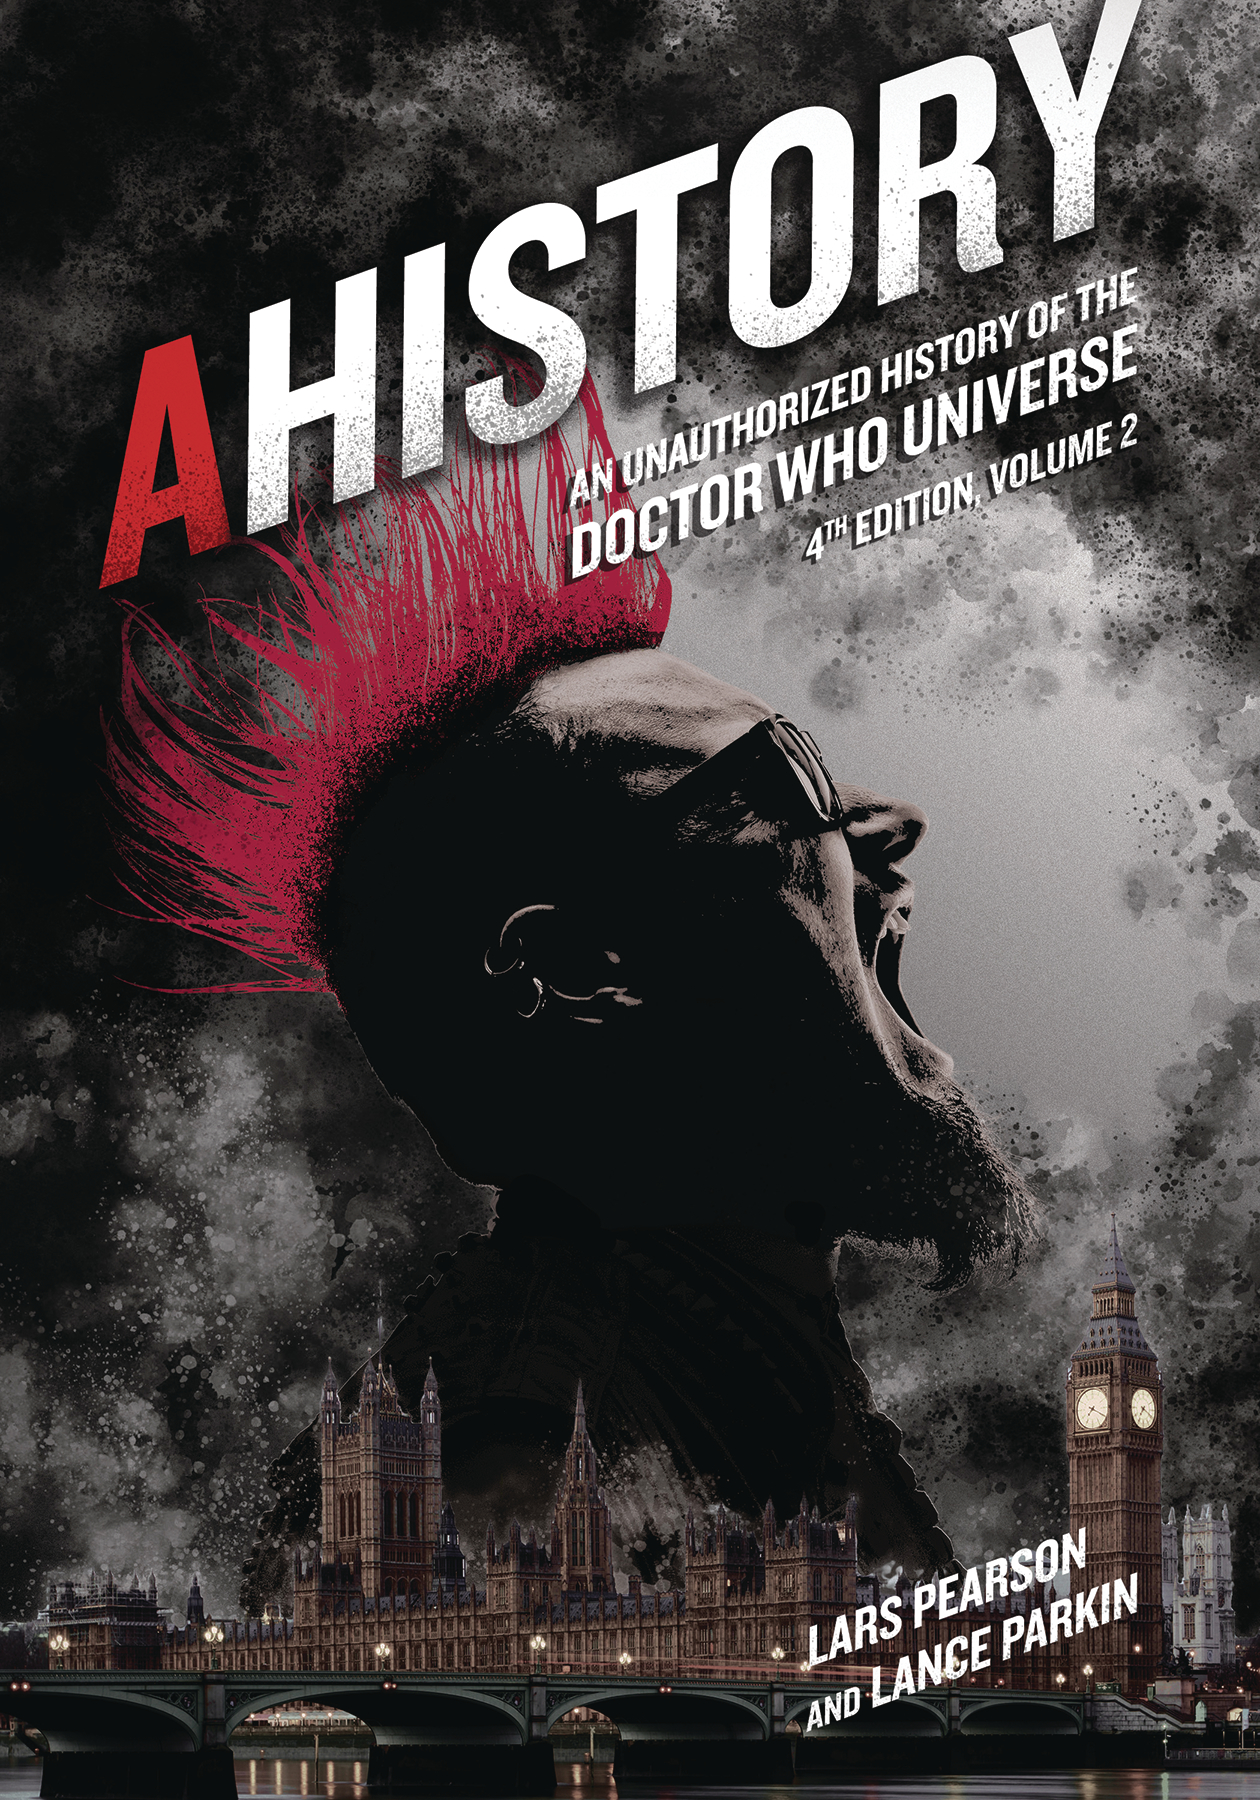 AHISTORY UNAUTH HIST OF DOCTOR WHO UNIVERSE 4TH ED VOL 02 (C